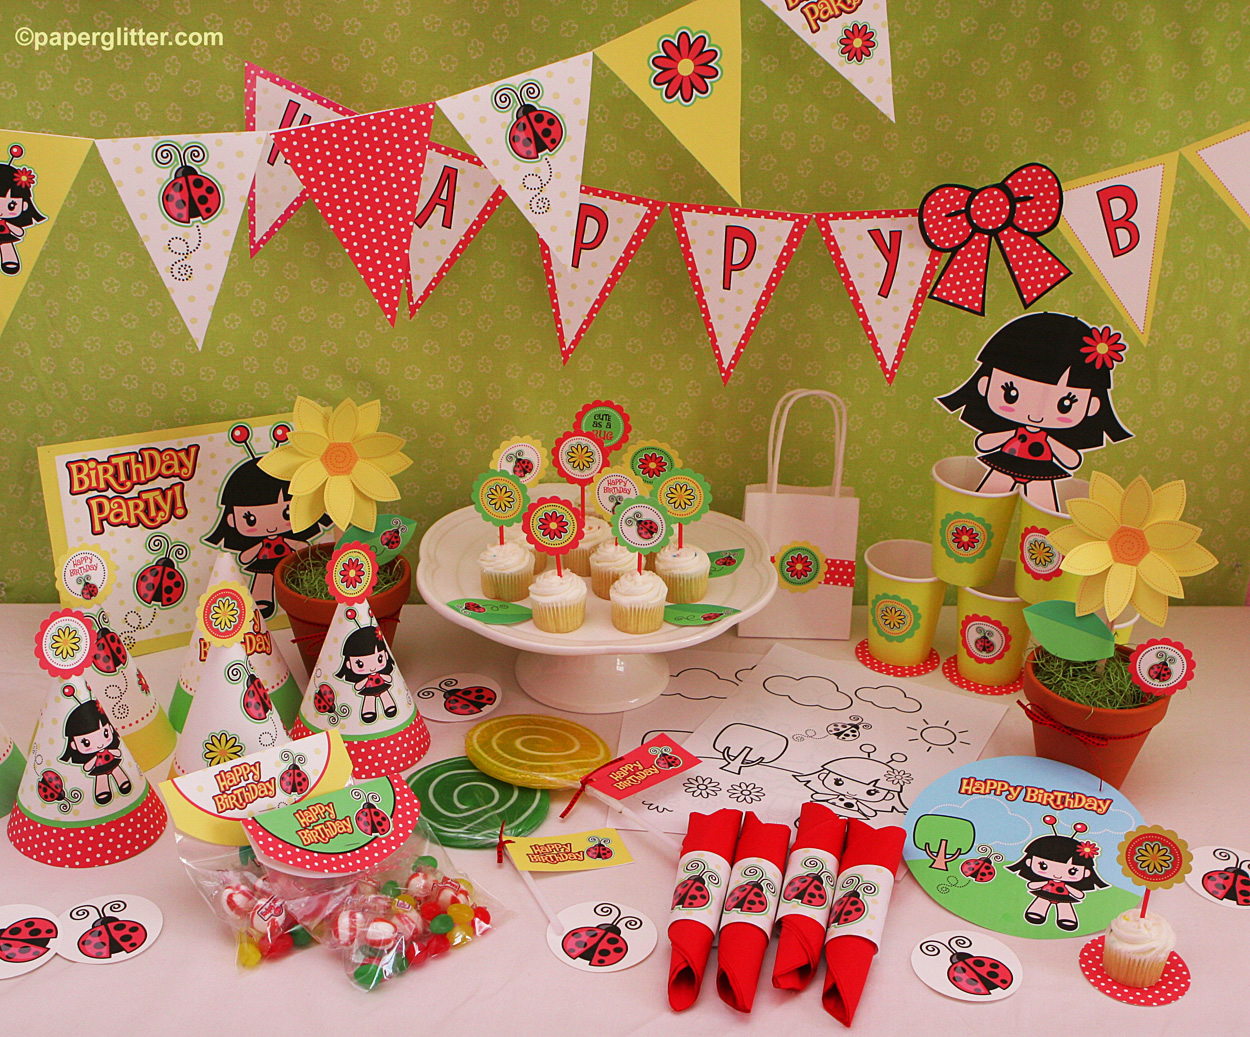 ladybug_party_printable_stationery_decoration01_copy.jpg